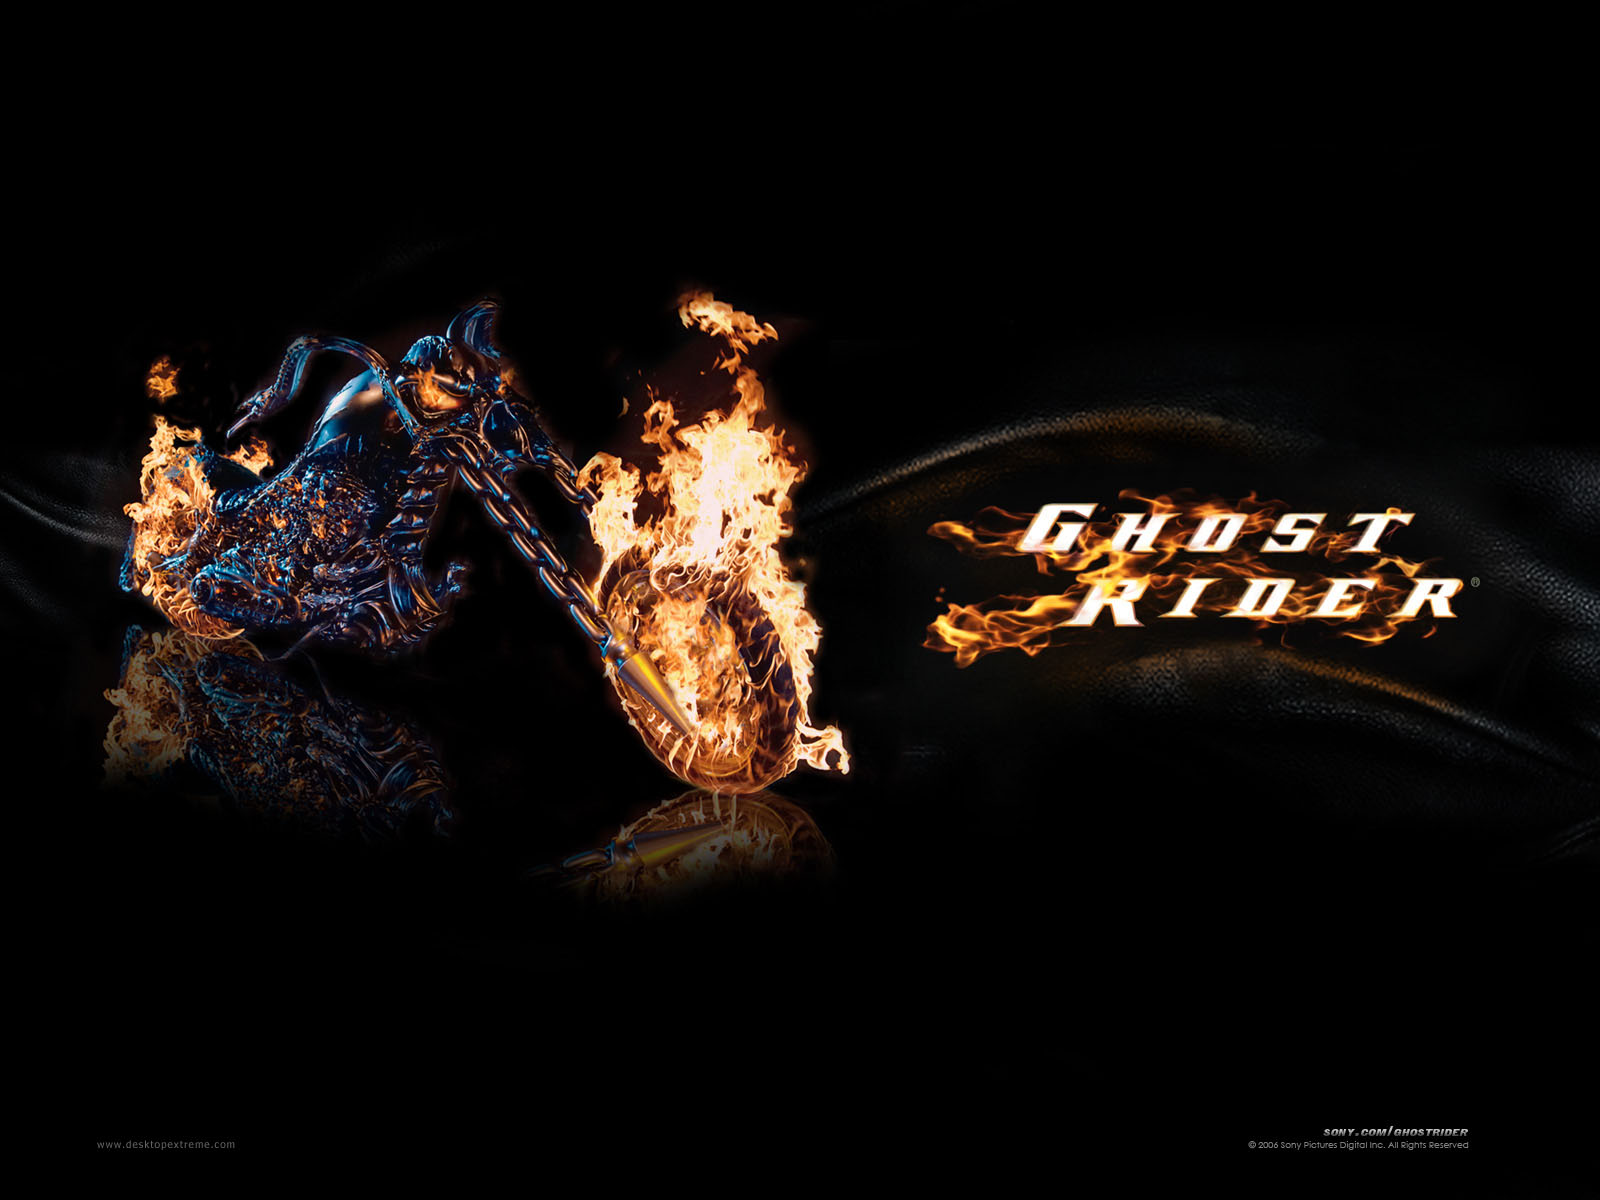 http://4.bp.blogspot.com/-1edEVicM3XM/TlikXE5xw7I/AAAAAAAAAJs/v8WulxmaJSA/s1600/Ghost_Rider-_Spirit_of_Vengeance%2528wallpaper_resolution_%2529Ghost_Rider_2_wallpaper_1.jpg